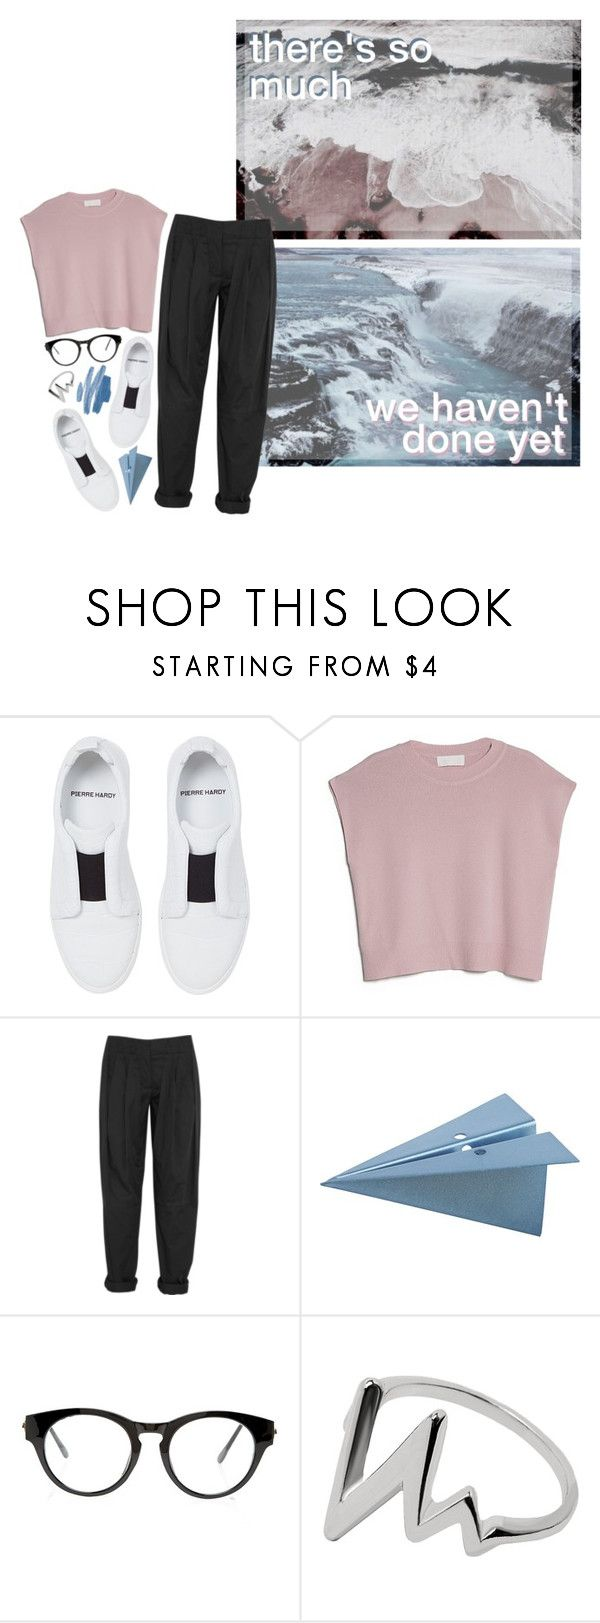 """COMING BACK NOW"" by glowing-eyes ❤ liked on Polyvore featuring Pierre Hardy, MANGO, Alexander Wang, CB2 and 21 Men"